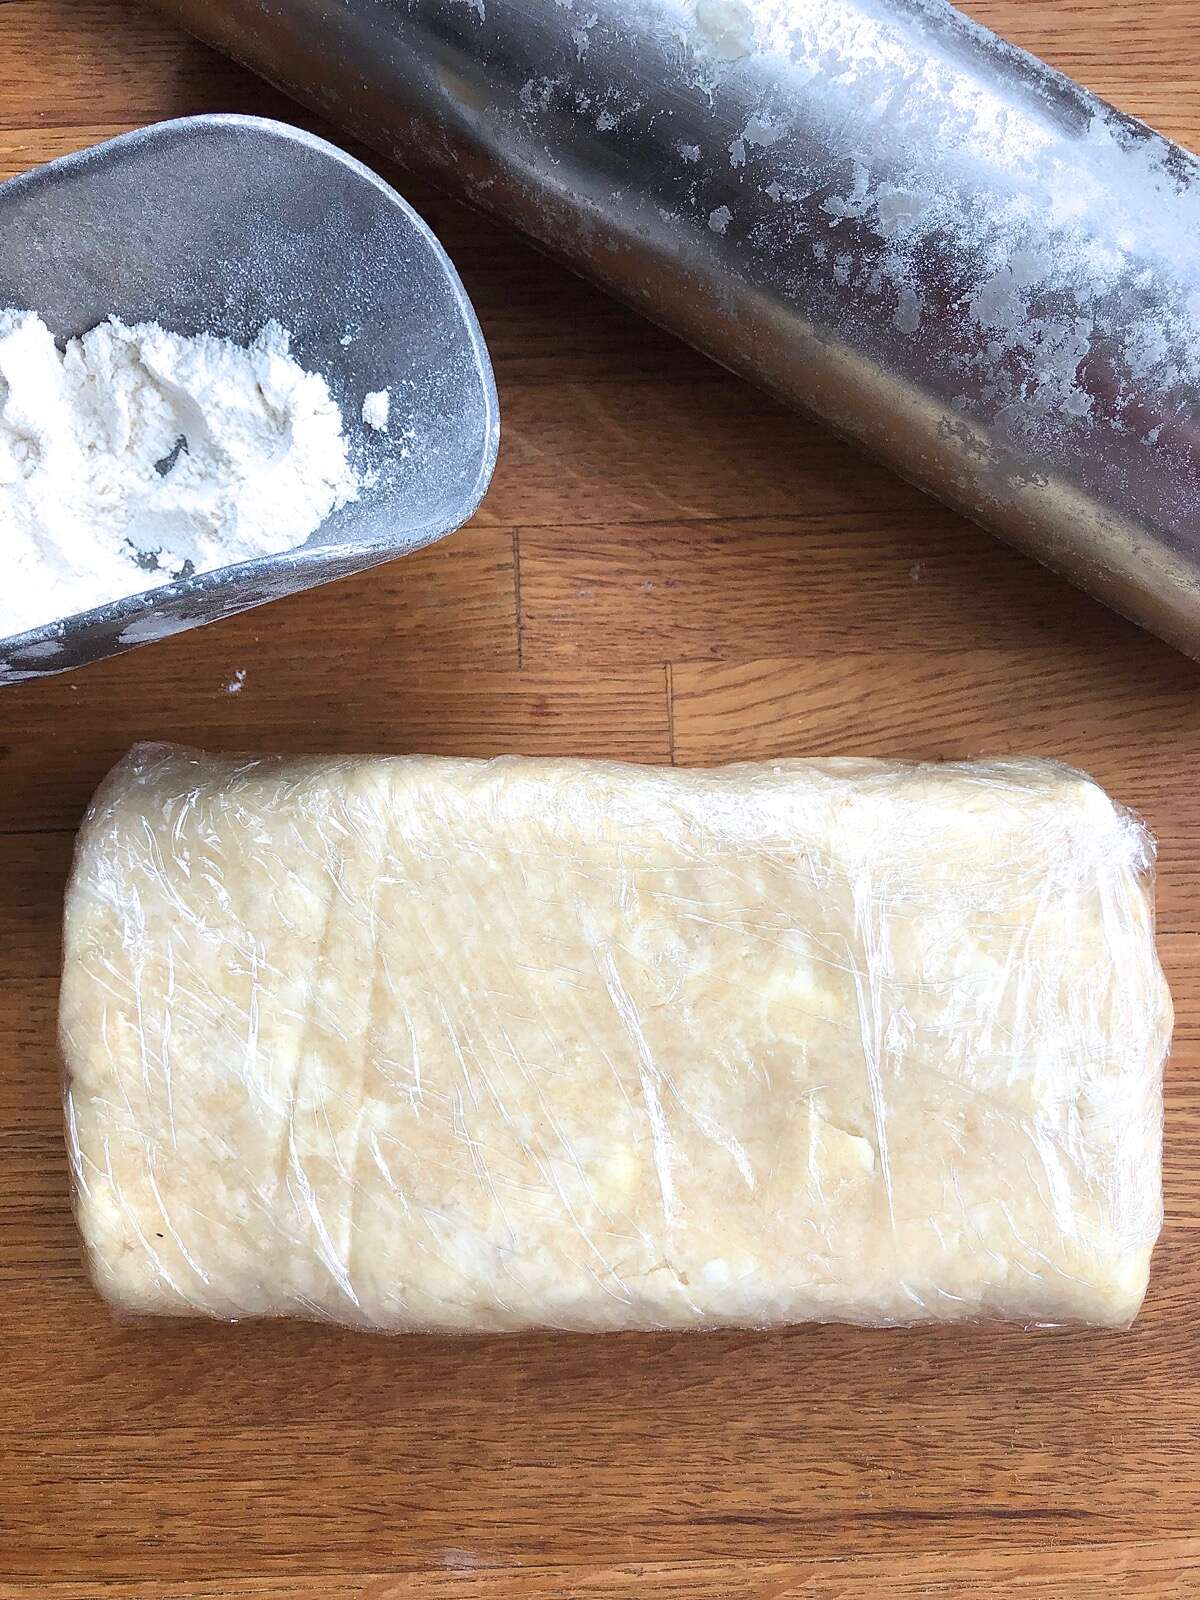 Super-flaky pie crust dough wrapped in plastic for the refrigerator